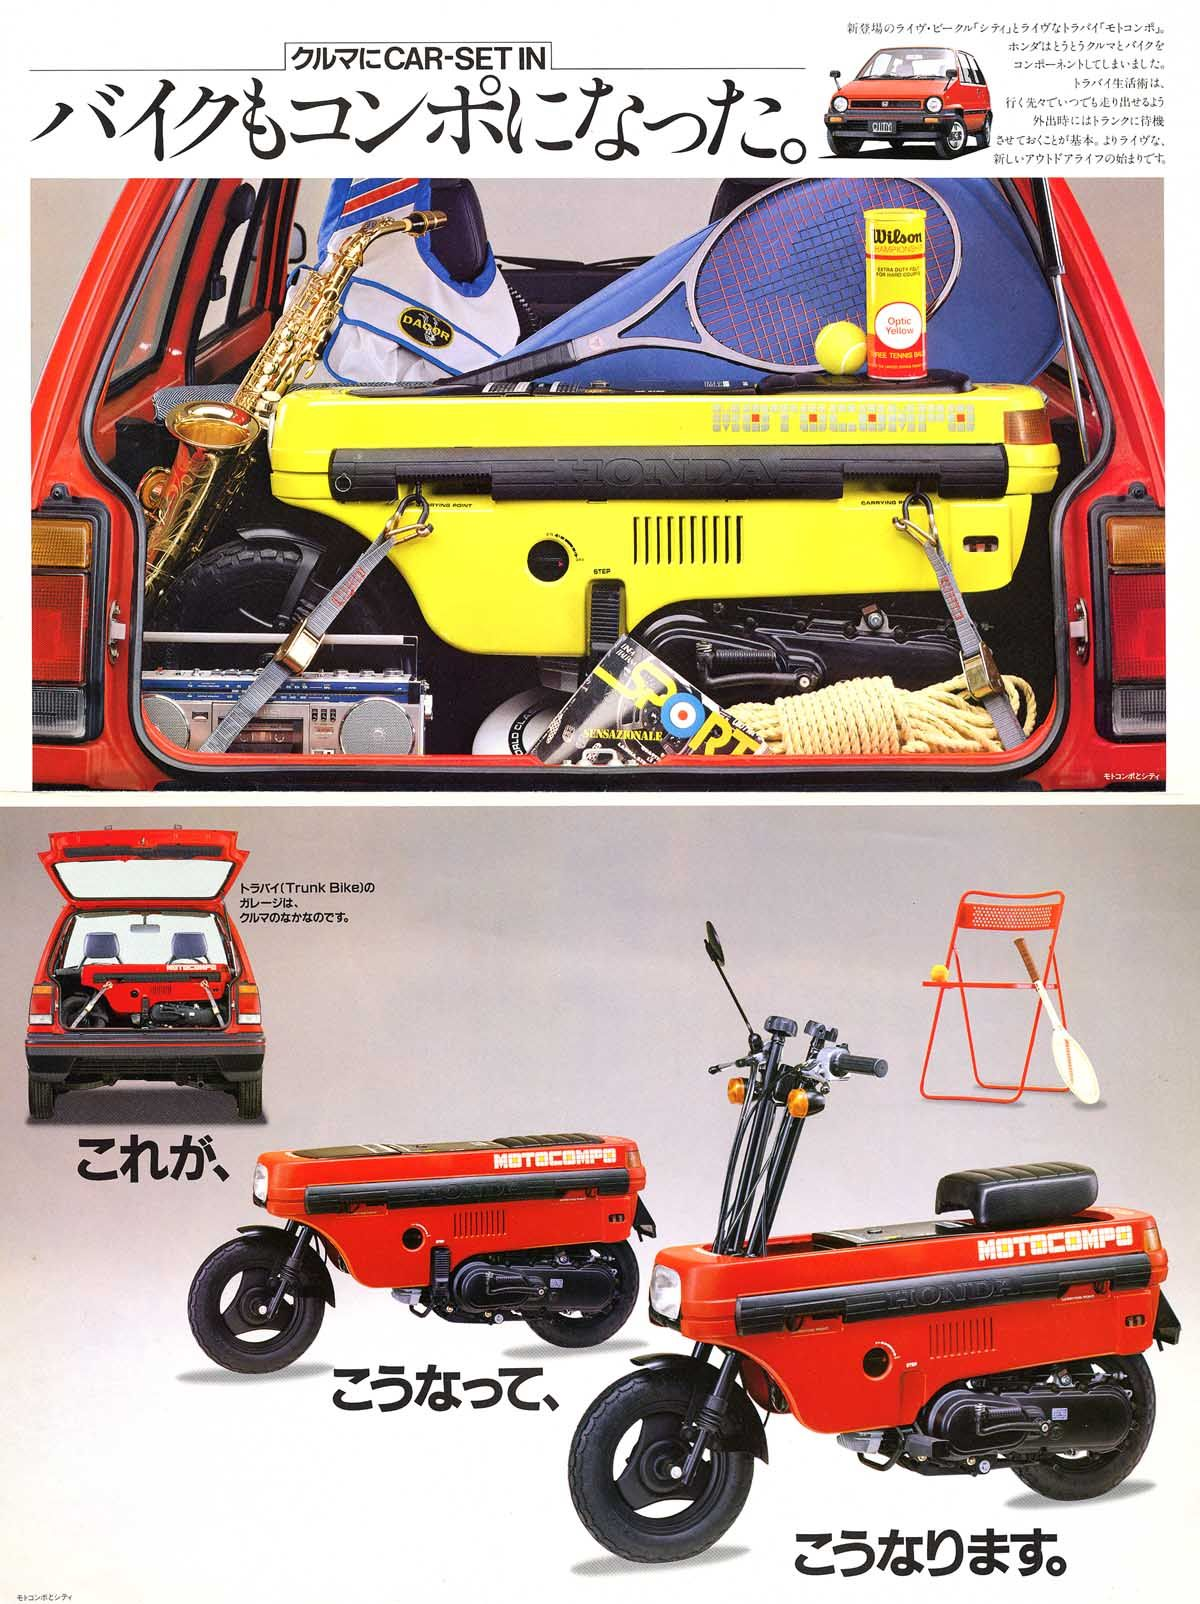 Honda city hatchback with foldable motocompo motorcycle adv